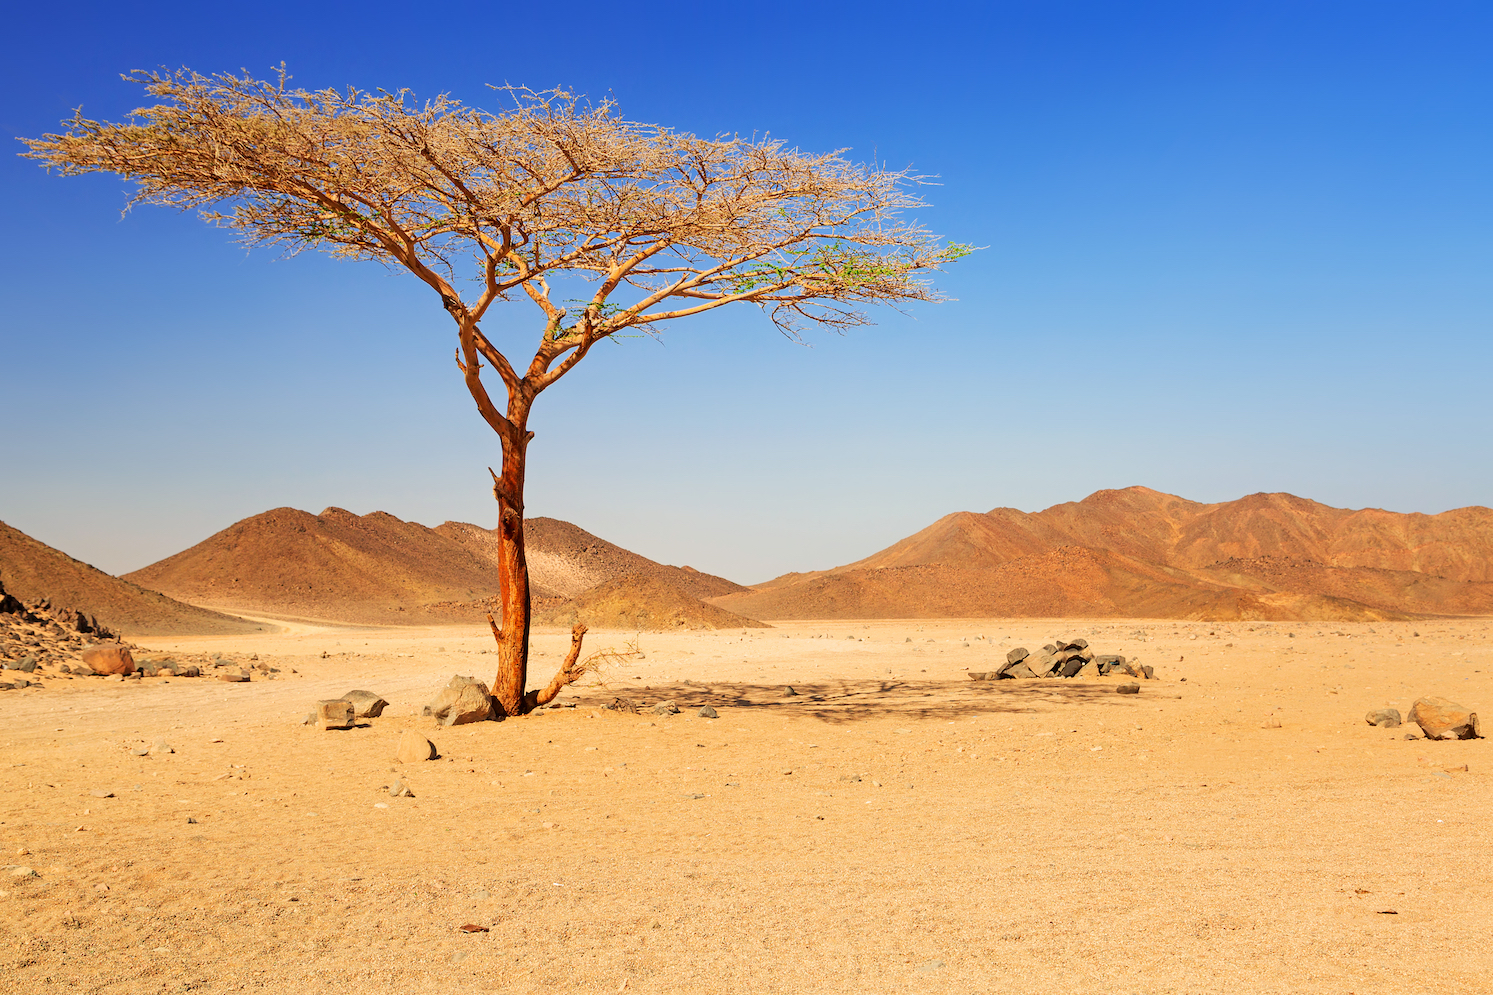 Today, the African Sahara one of the driest places on Earth. But thousands of years ago, northern Africa experienced a wet and humid period,